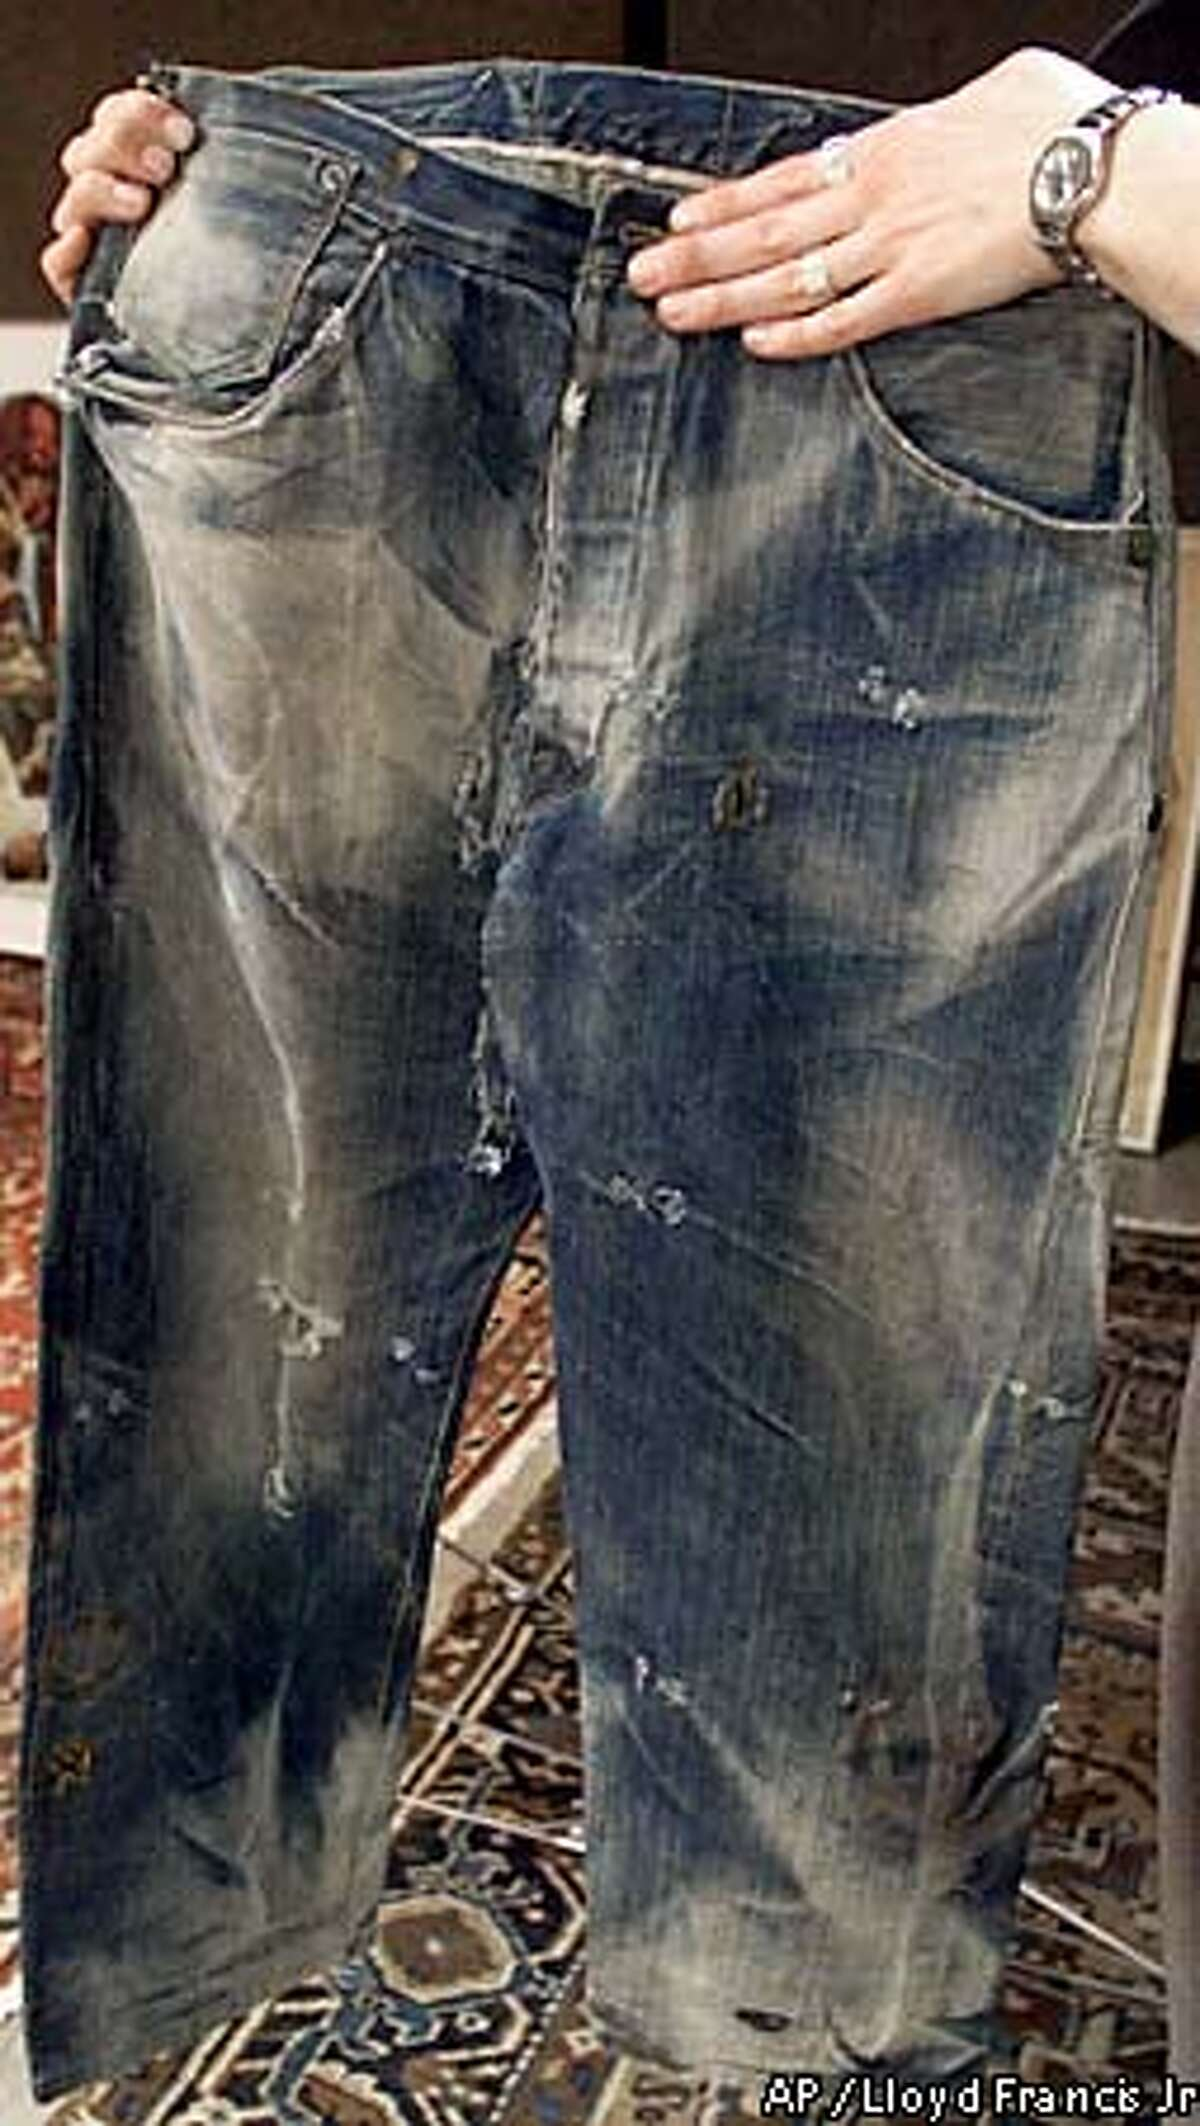 These Levi's found in Nevada may be the world's oldest. Associated Press photo by Lloyd Francis Jr